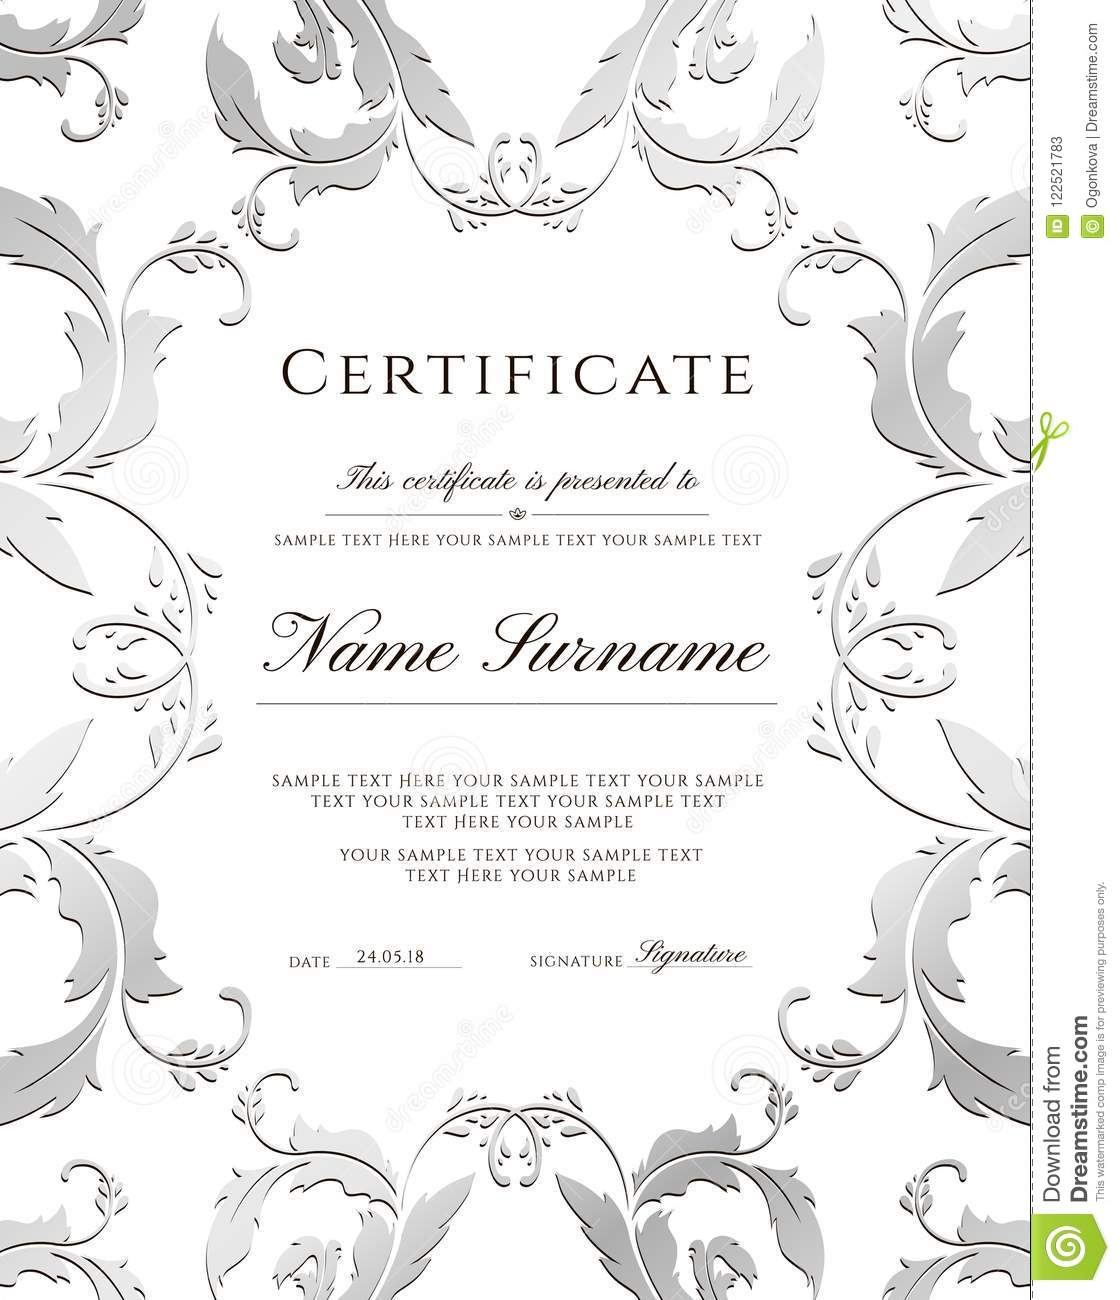 Certificate Template, Silver Border. Editable Design For